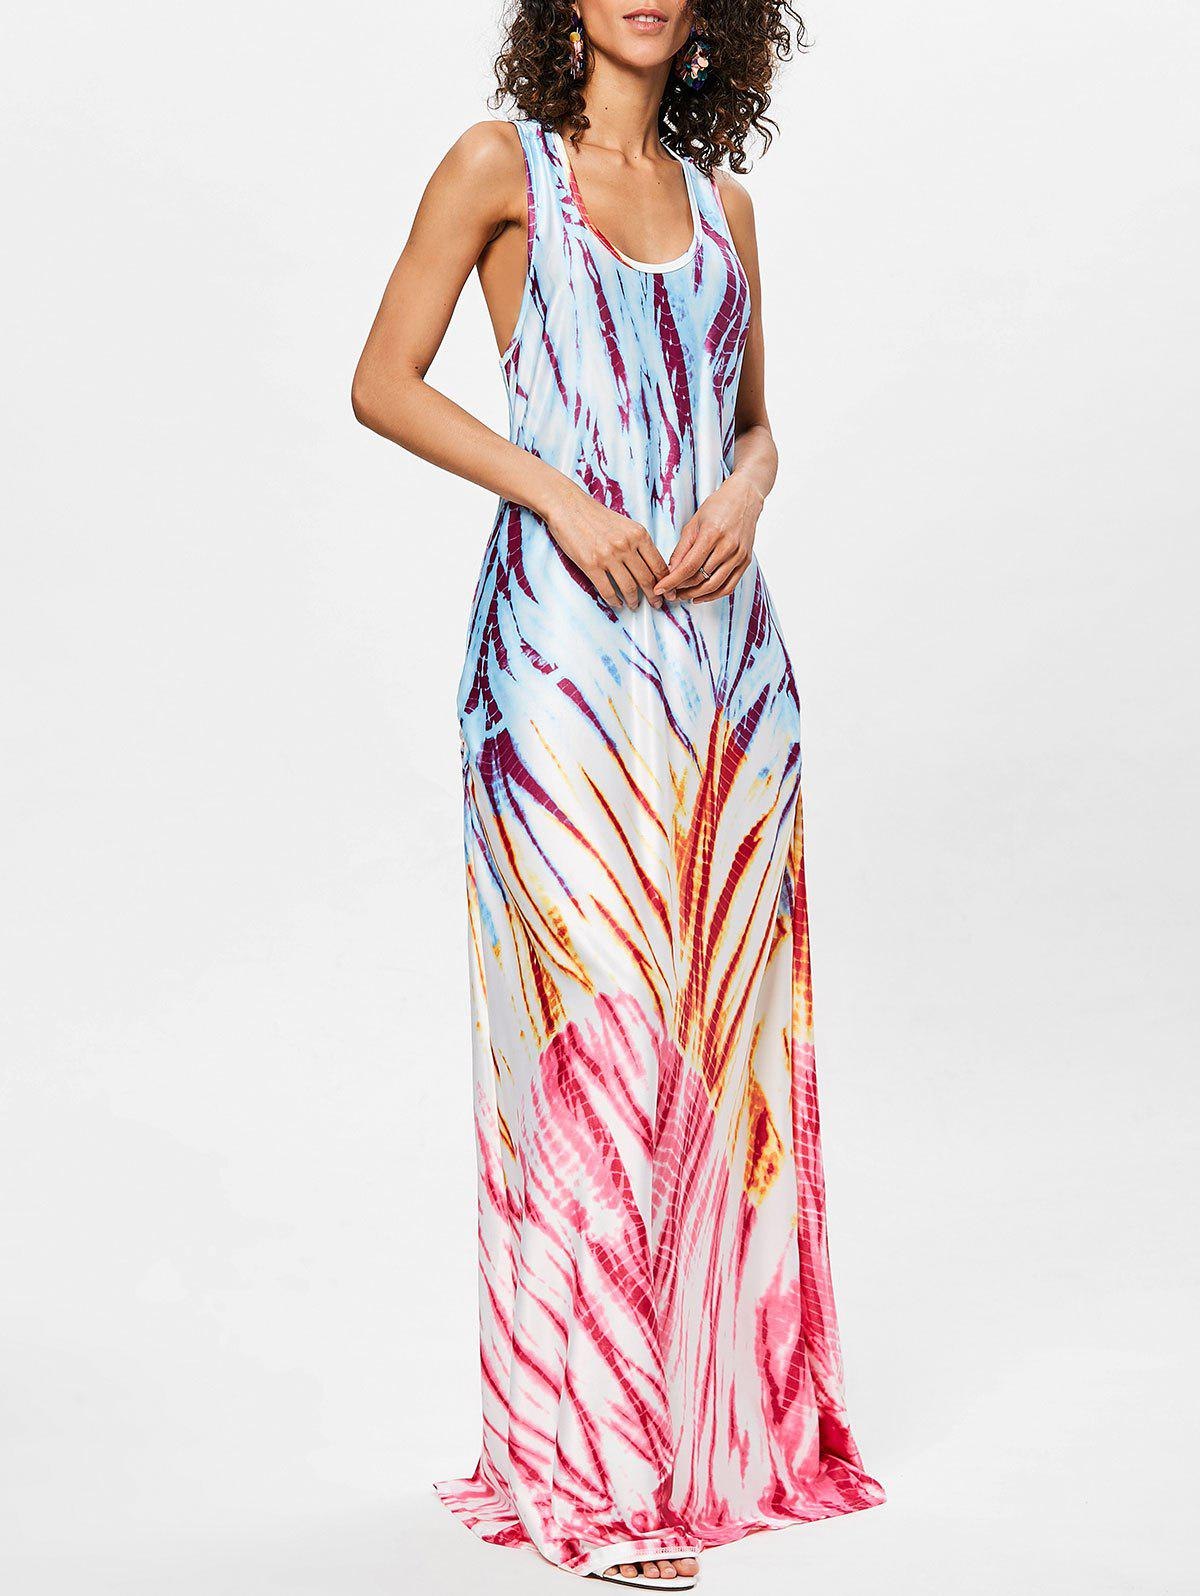 Store Scoop Neck Racerback Maxi Dress